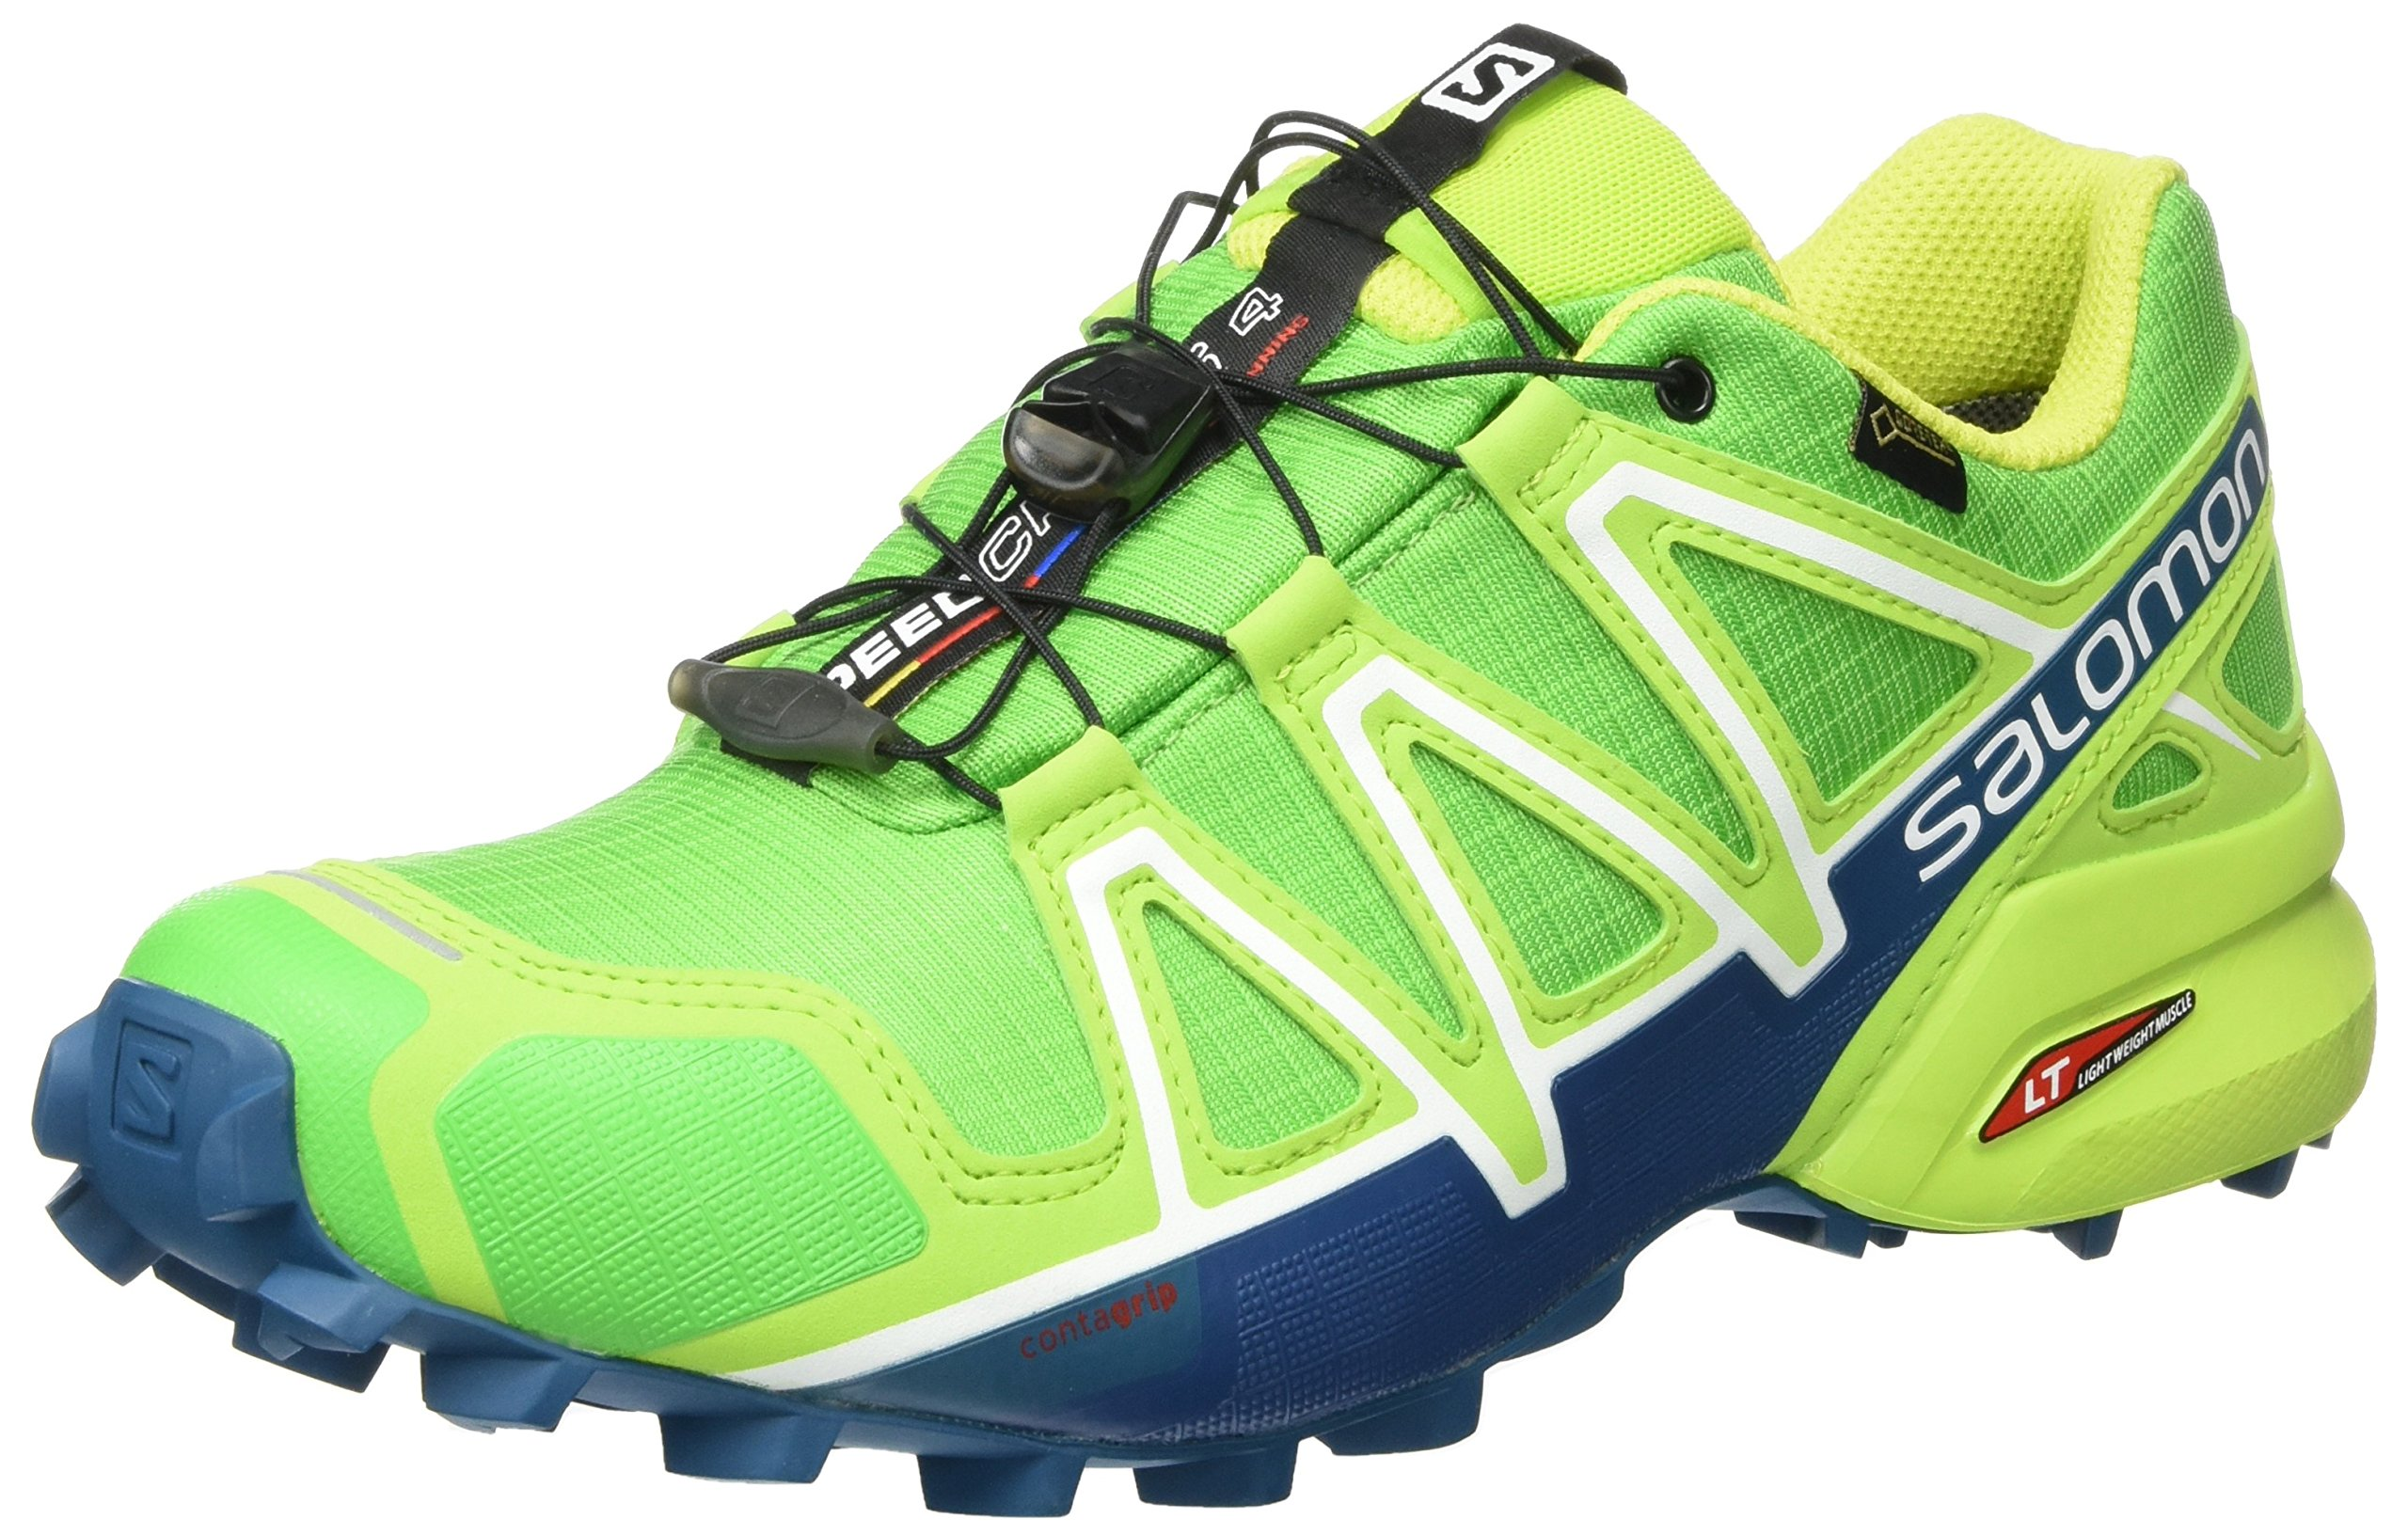 96a4f1a2a8bc Galleon - Salomon Men s Speedcross 4 GTX Classic Green Lime Green Poseidon  Athletic Shoe